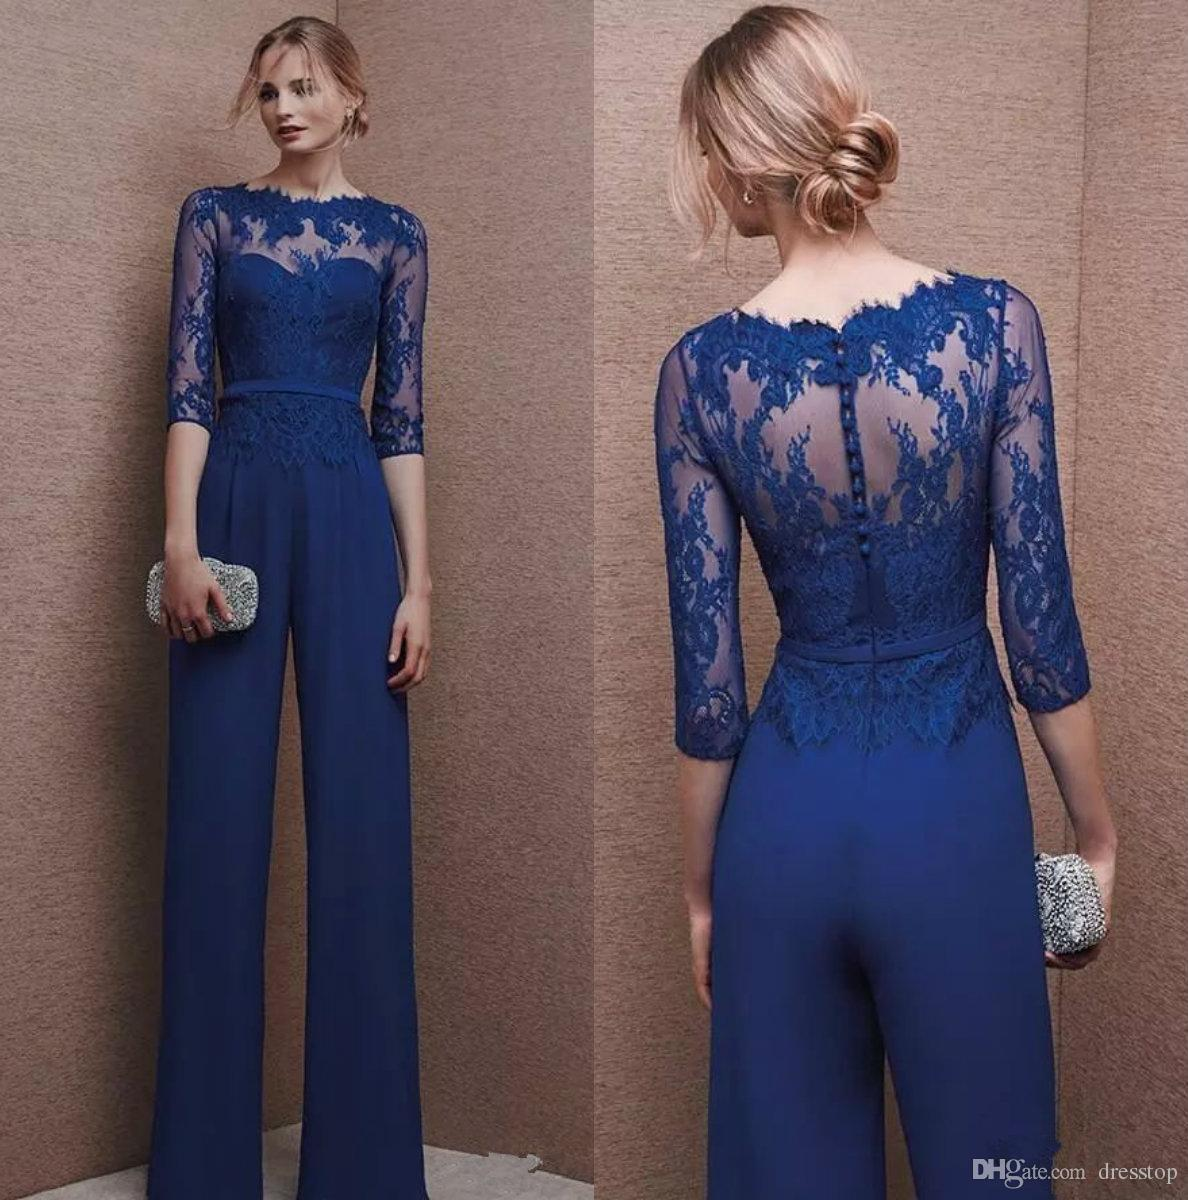 82f51675bd0 Royal Blue 2017 Plus Size Mother Of Bride Pant Suit 3 4 Lace Sleeve Mother  Jumpsuit Chiffon Cocktail Party Evening Dresses Custom Made J0an Rivers  Joan Joan ...